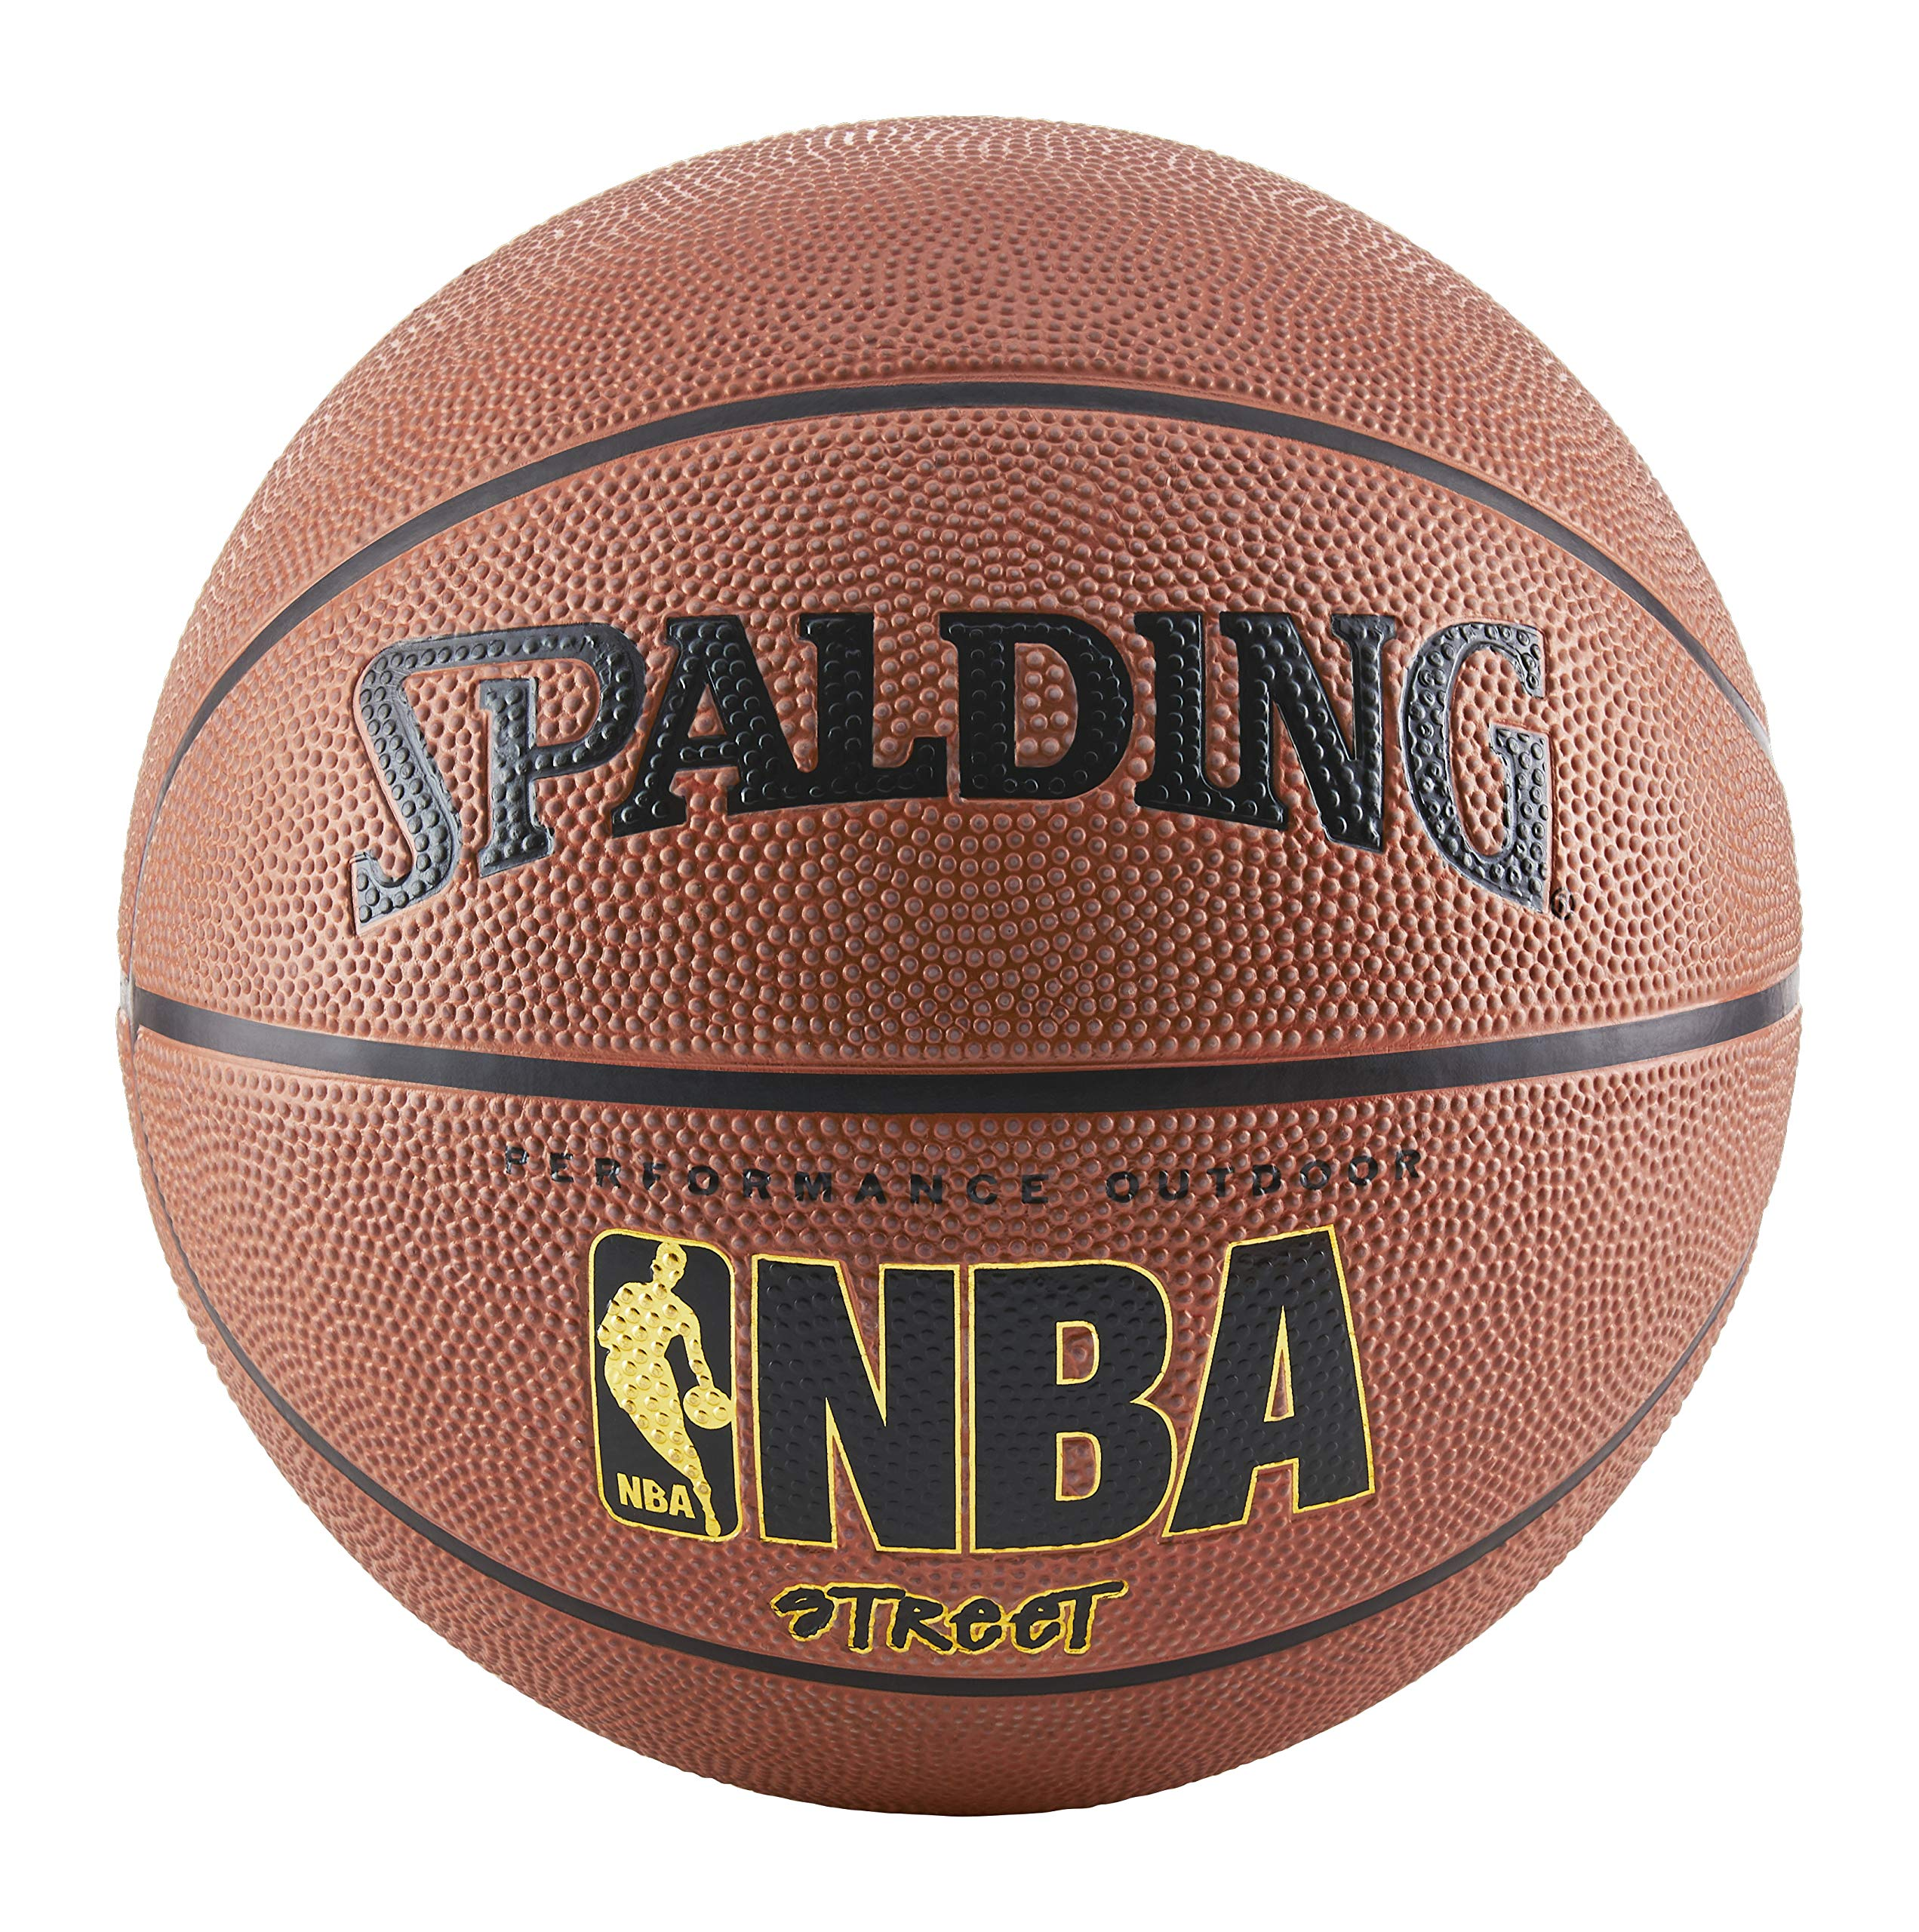 Spalding NBA Street Basketball Official